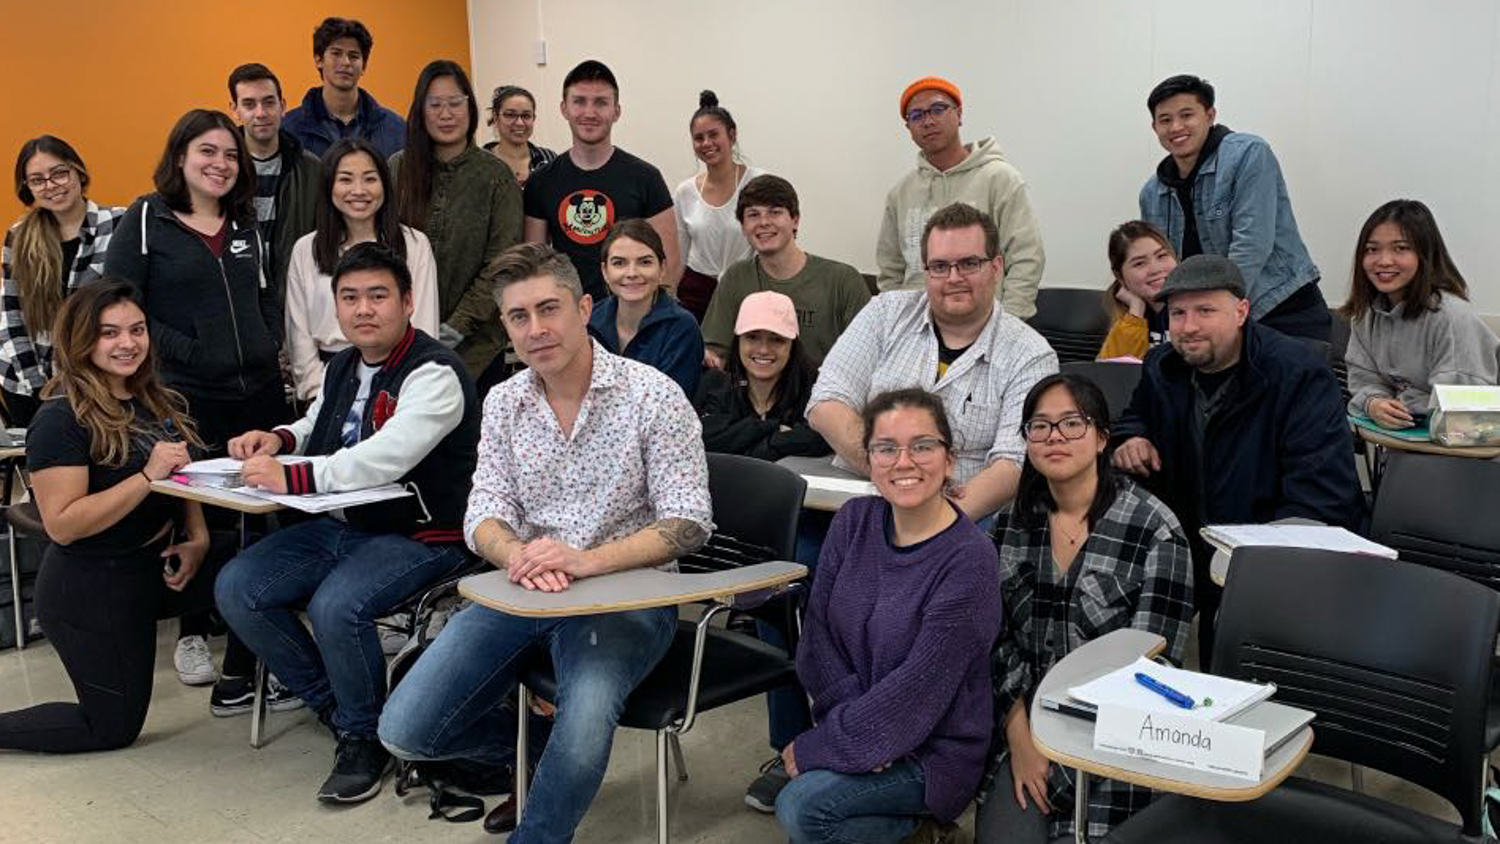 Adam Gubman, partner, lead composer and audio director of Moonwalk Audio, ,with Cal State Fullerton students in February 2019.